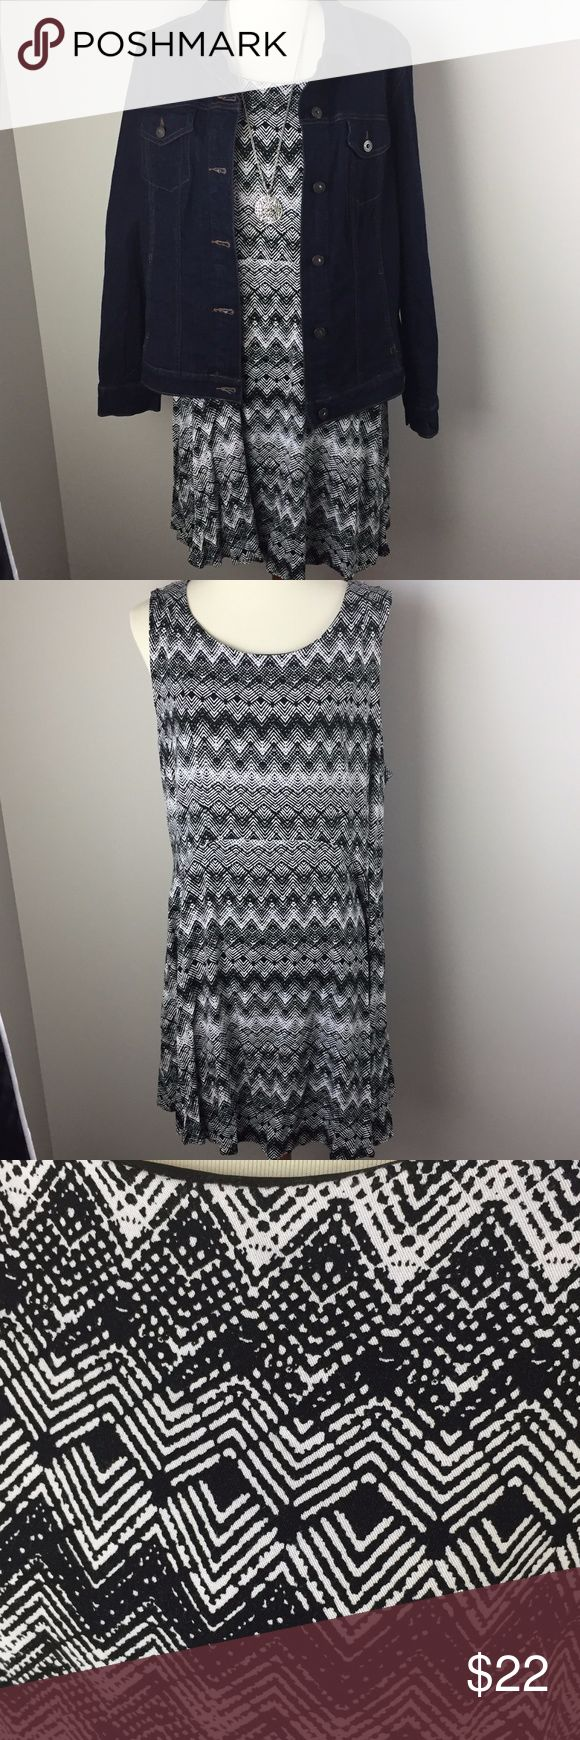 "Torrid Black & White Dress Women's Plus Size 22 This dress is lined.  Looks brand new!  So many ways to accessorize this cute dress!  Comes from a smoke-free and pet-free home.  Approximate measurements laying flat: full length: 37"", armpit to armpit: 21"", waist: 20"", waist to hem: 21"" 97% Rayon, 3% Spandex torrid Dresses"